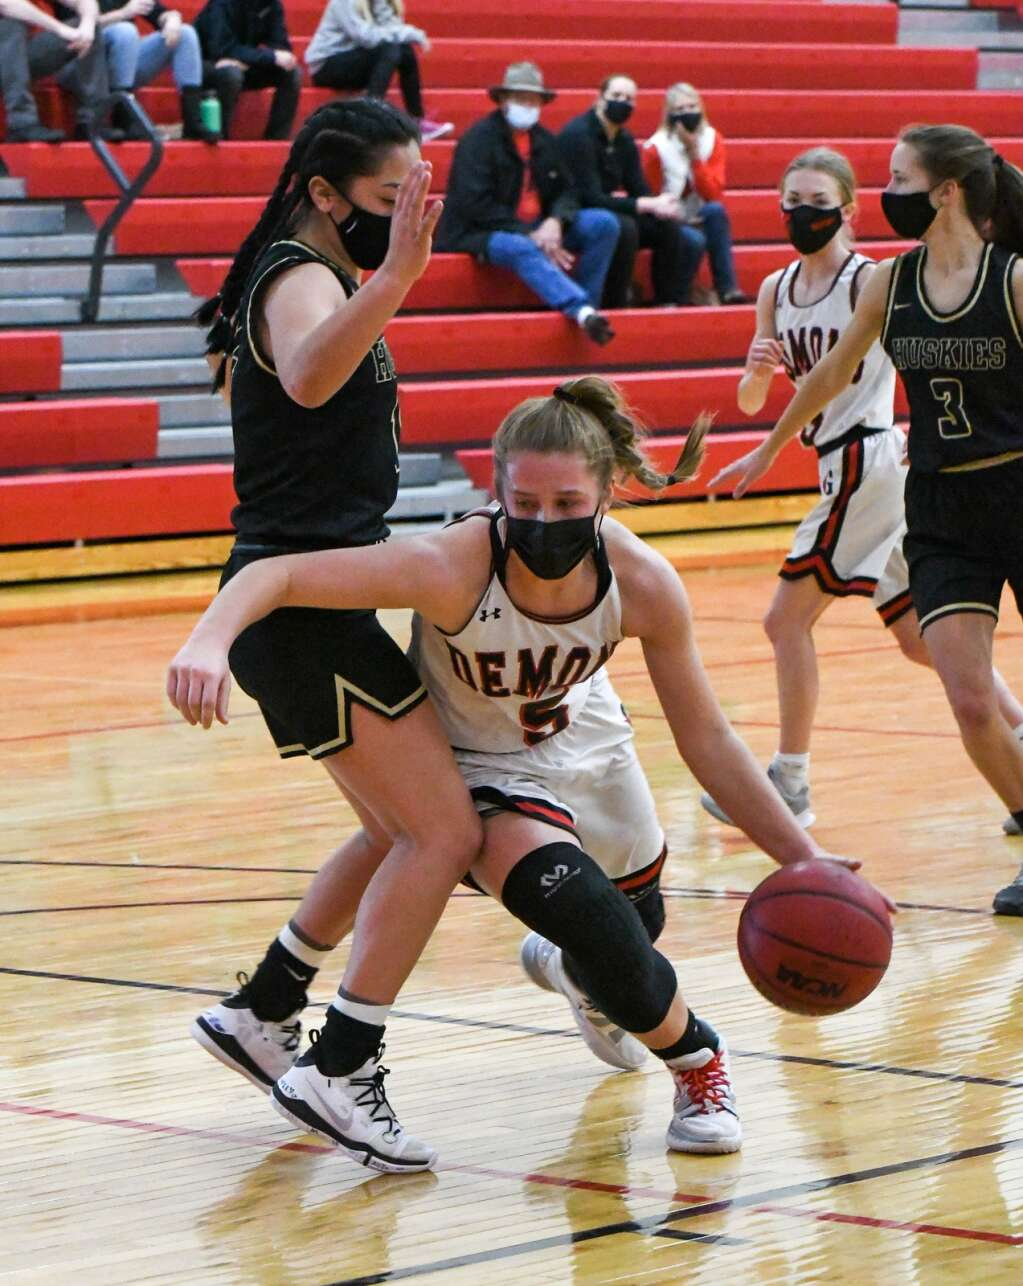 Glenwood Springs Demon Kenzie Winder dribbles the ball around the defending Battle Mountain Husky during Thursday night's game at Glenwood Springs High School. |Chelsea Self / Post Independent